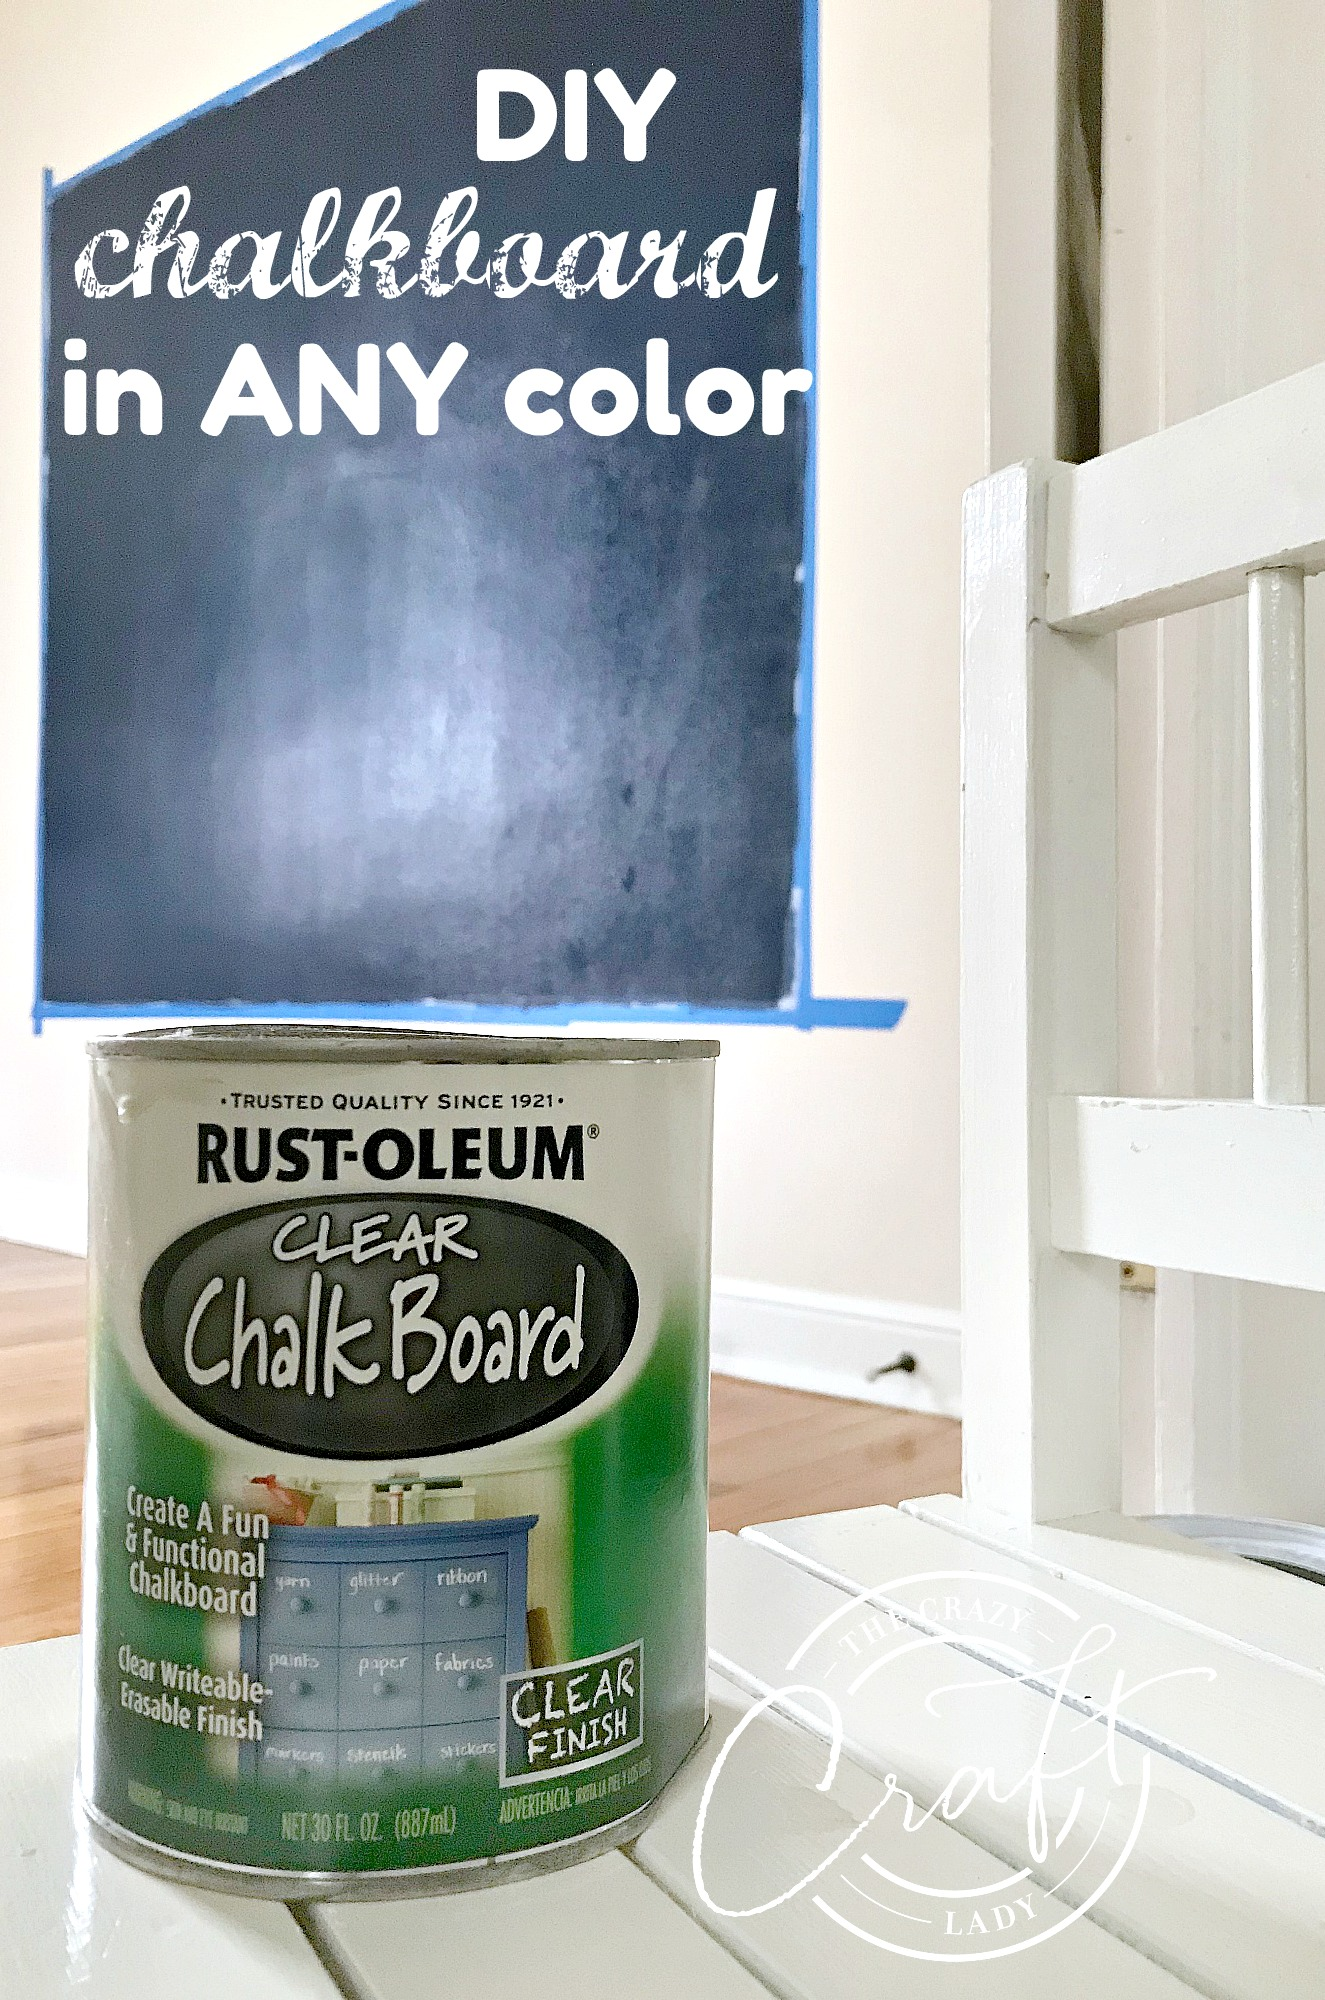 DIY Chalkboard in ANY Color Grab your paint roller, because today we're making a GIANT chalkboard wall in ANY custom color you like.